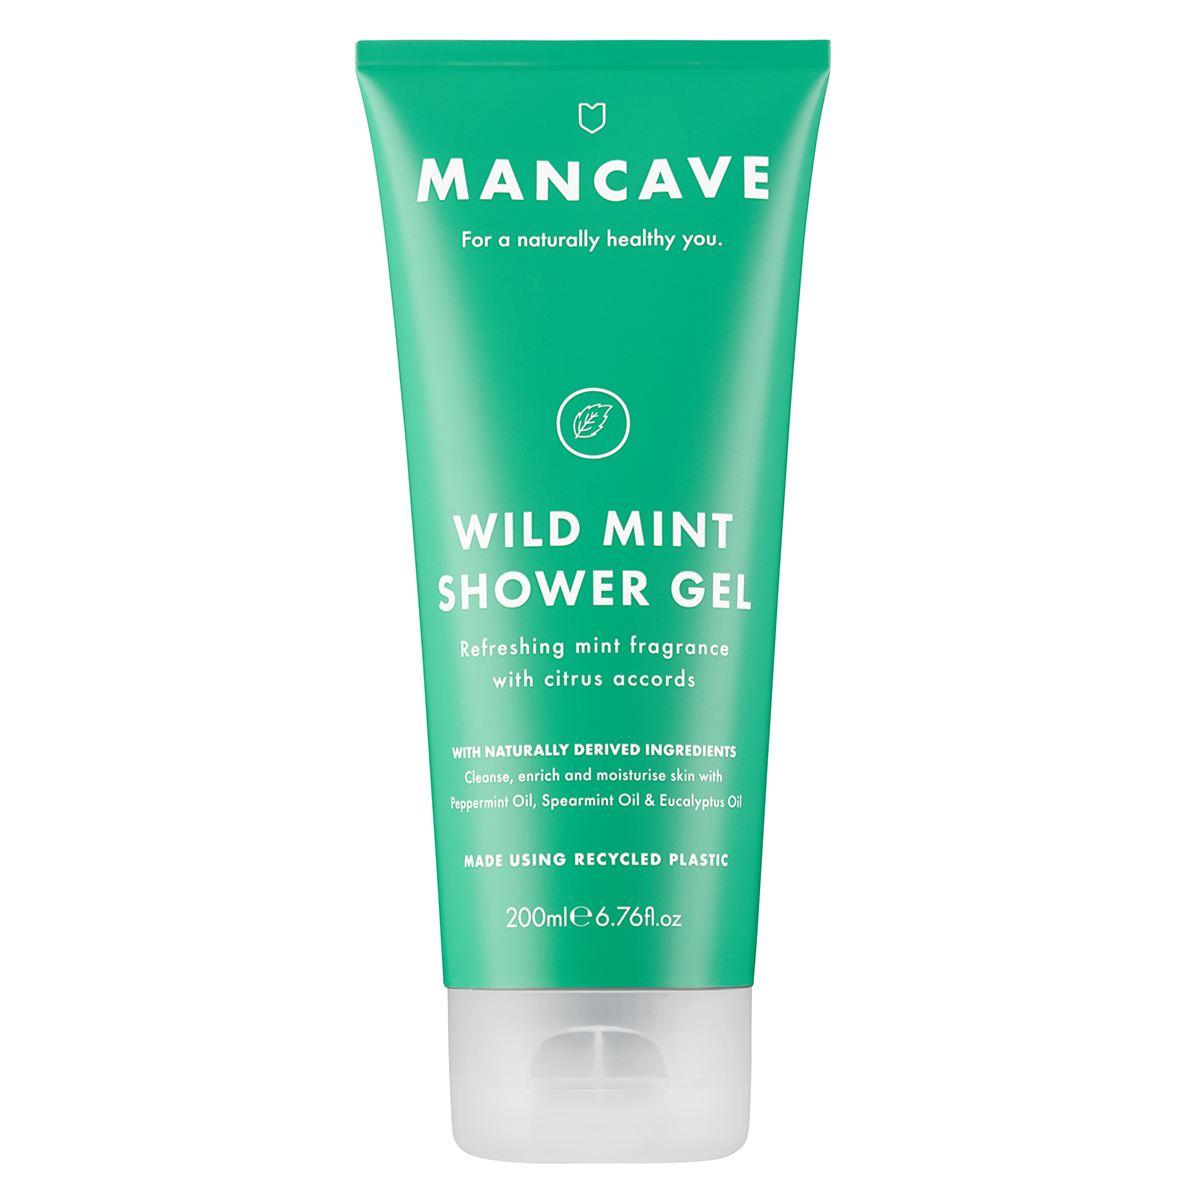 ManCave Wild Mint Shower Gel